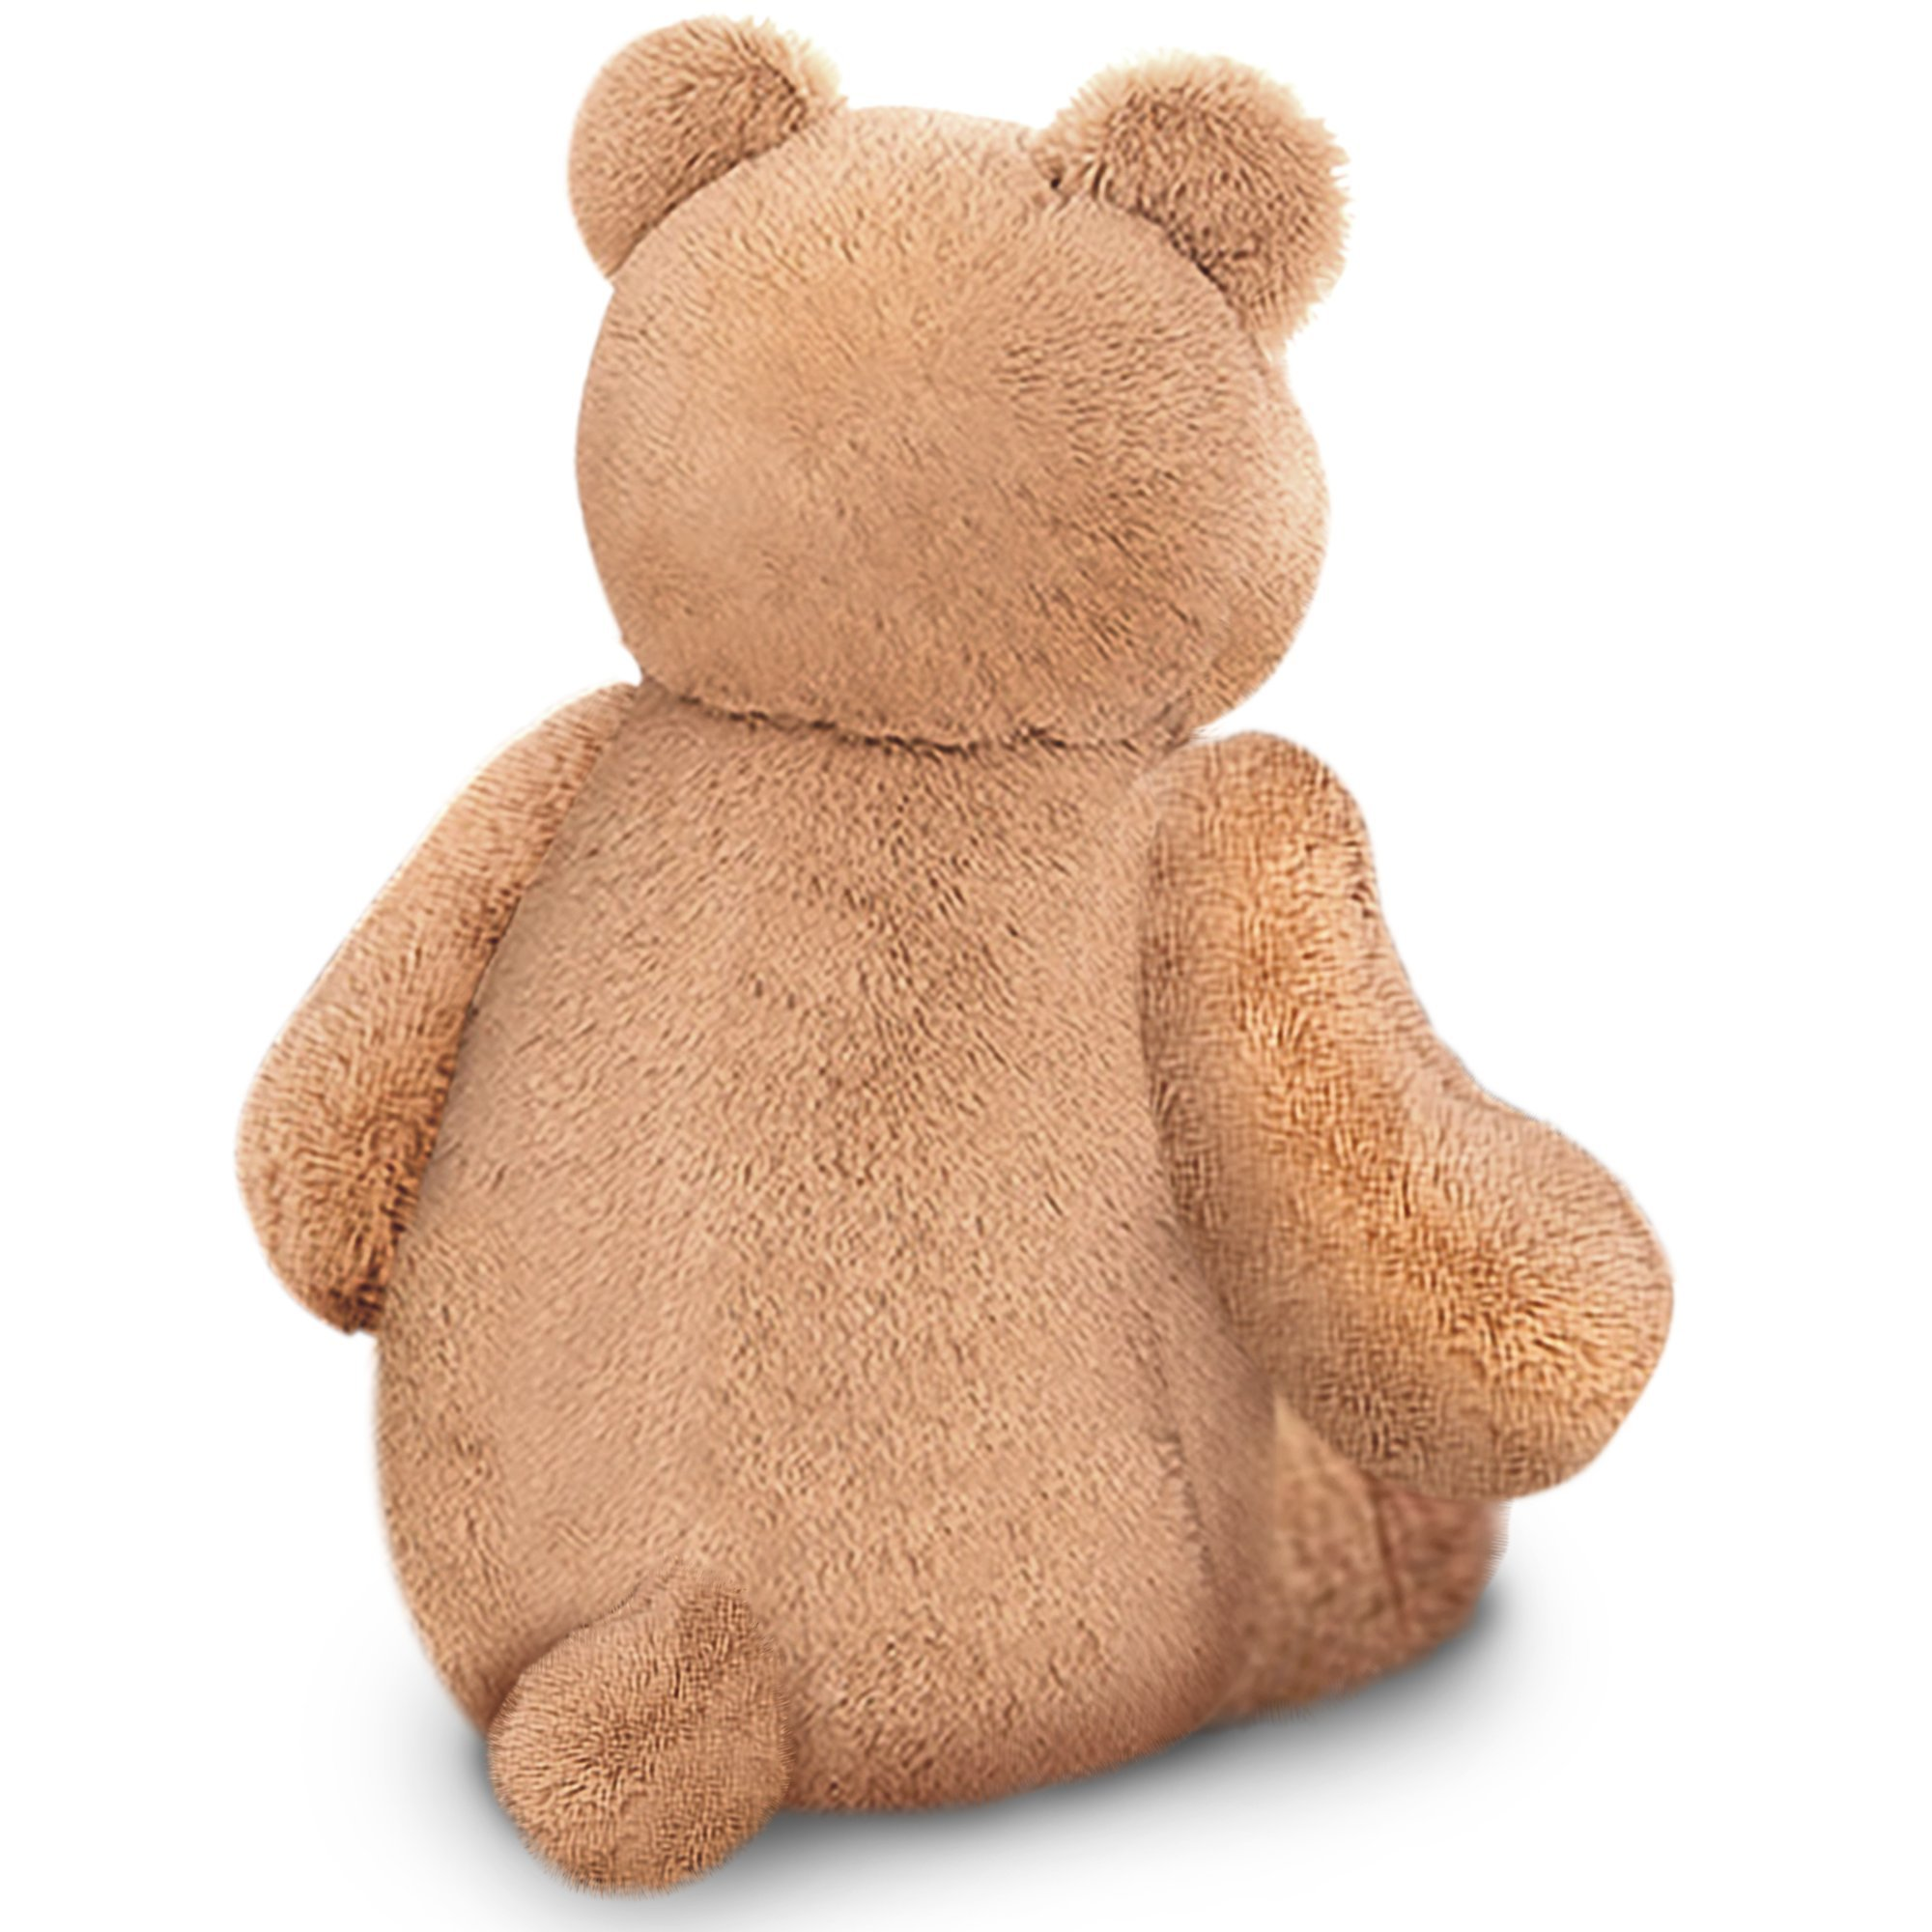 Artcreativity 4 Feet Giant Teddy Bear Extra Plush And Soft Toy